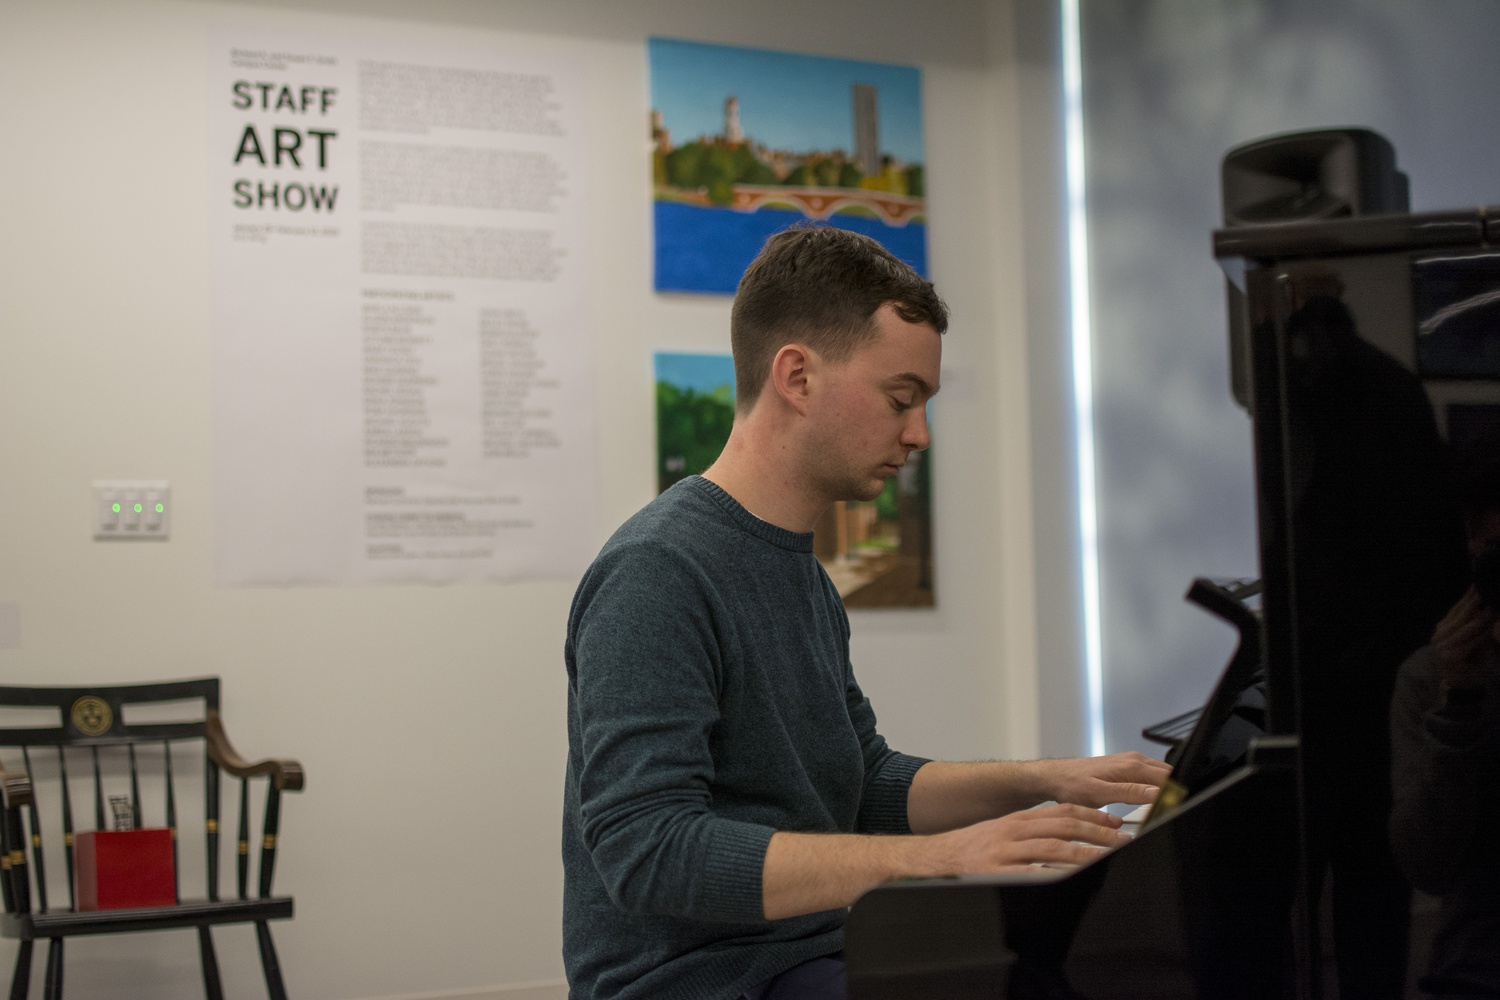 Jack Staid, who works at HUHS, was one of the participating artists at the Staff Art Show Wednesday at the Smith Campus Center. He has been playing the piano for 20 years and played three songs during the exhibition.